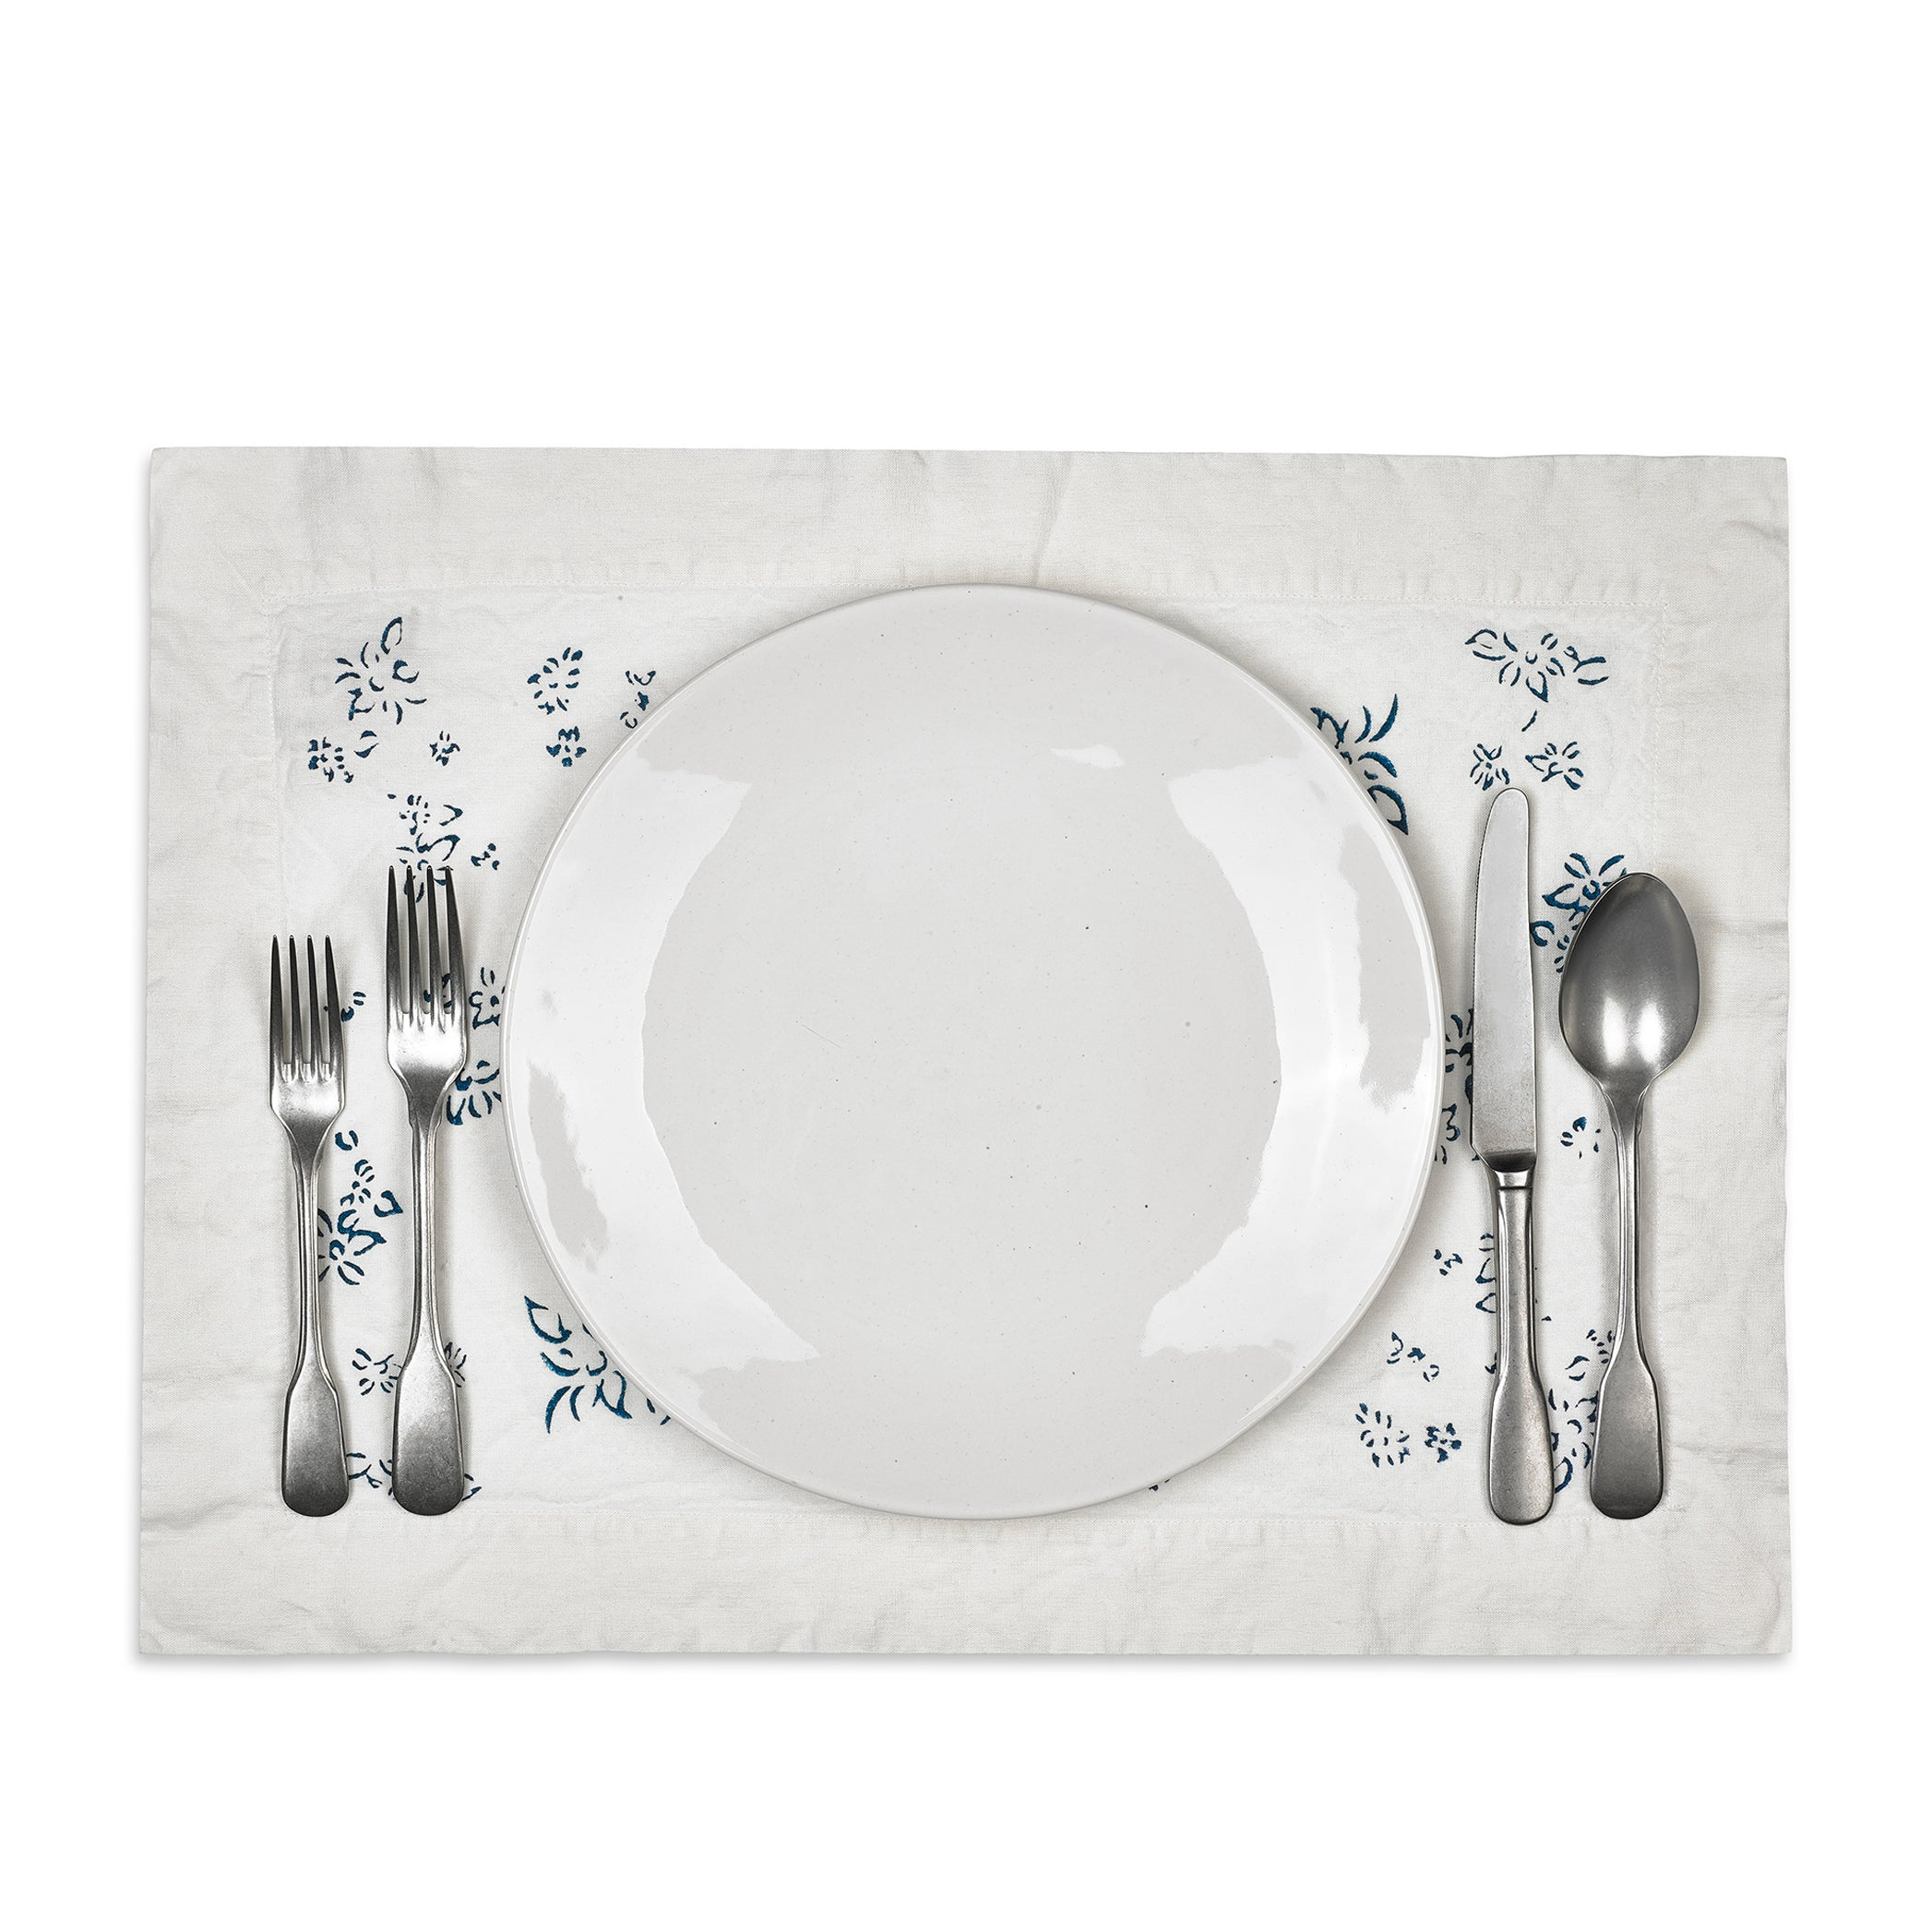 Bernadette's Falling Flower Linen Placemat in Midnight Blue